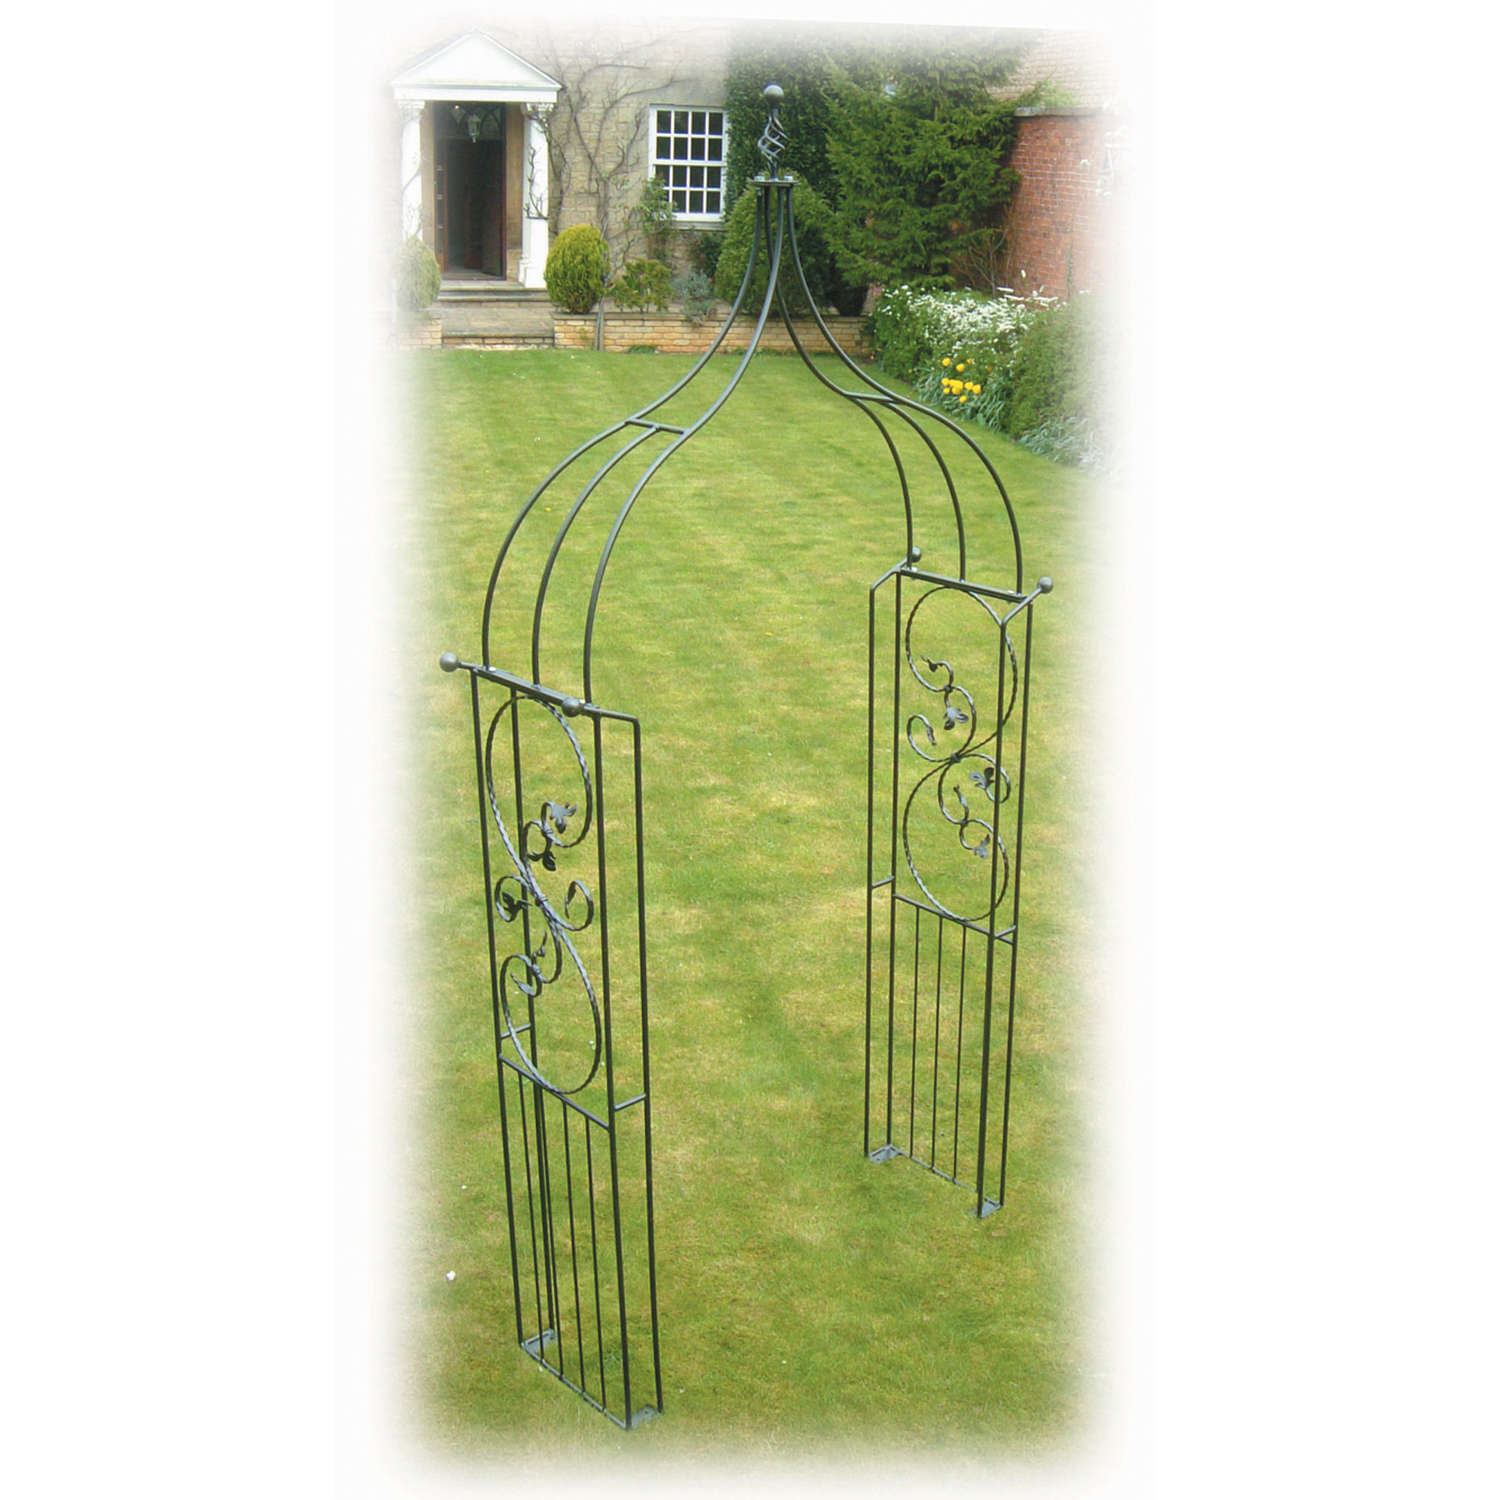 Poppyforge Imperial Ogee garden Arch manufactured in the UK